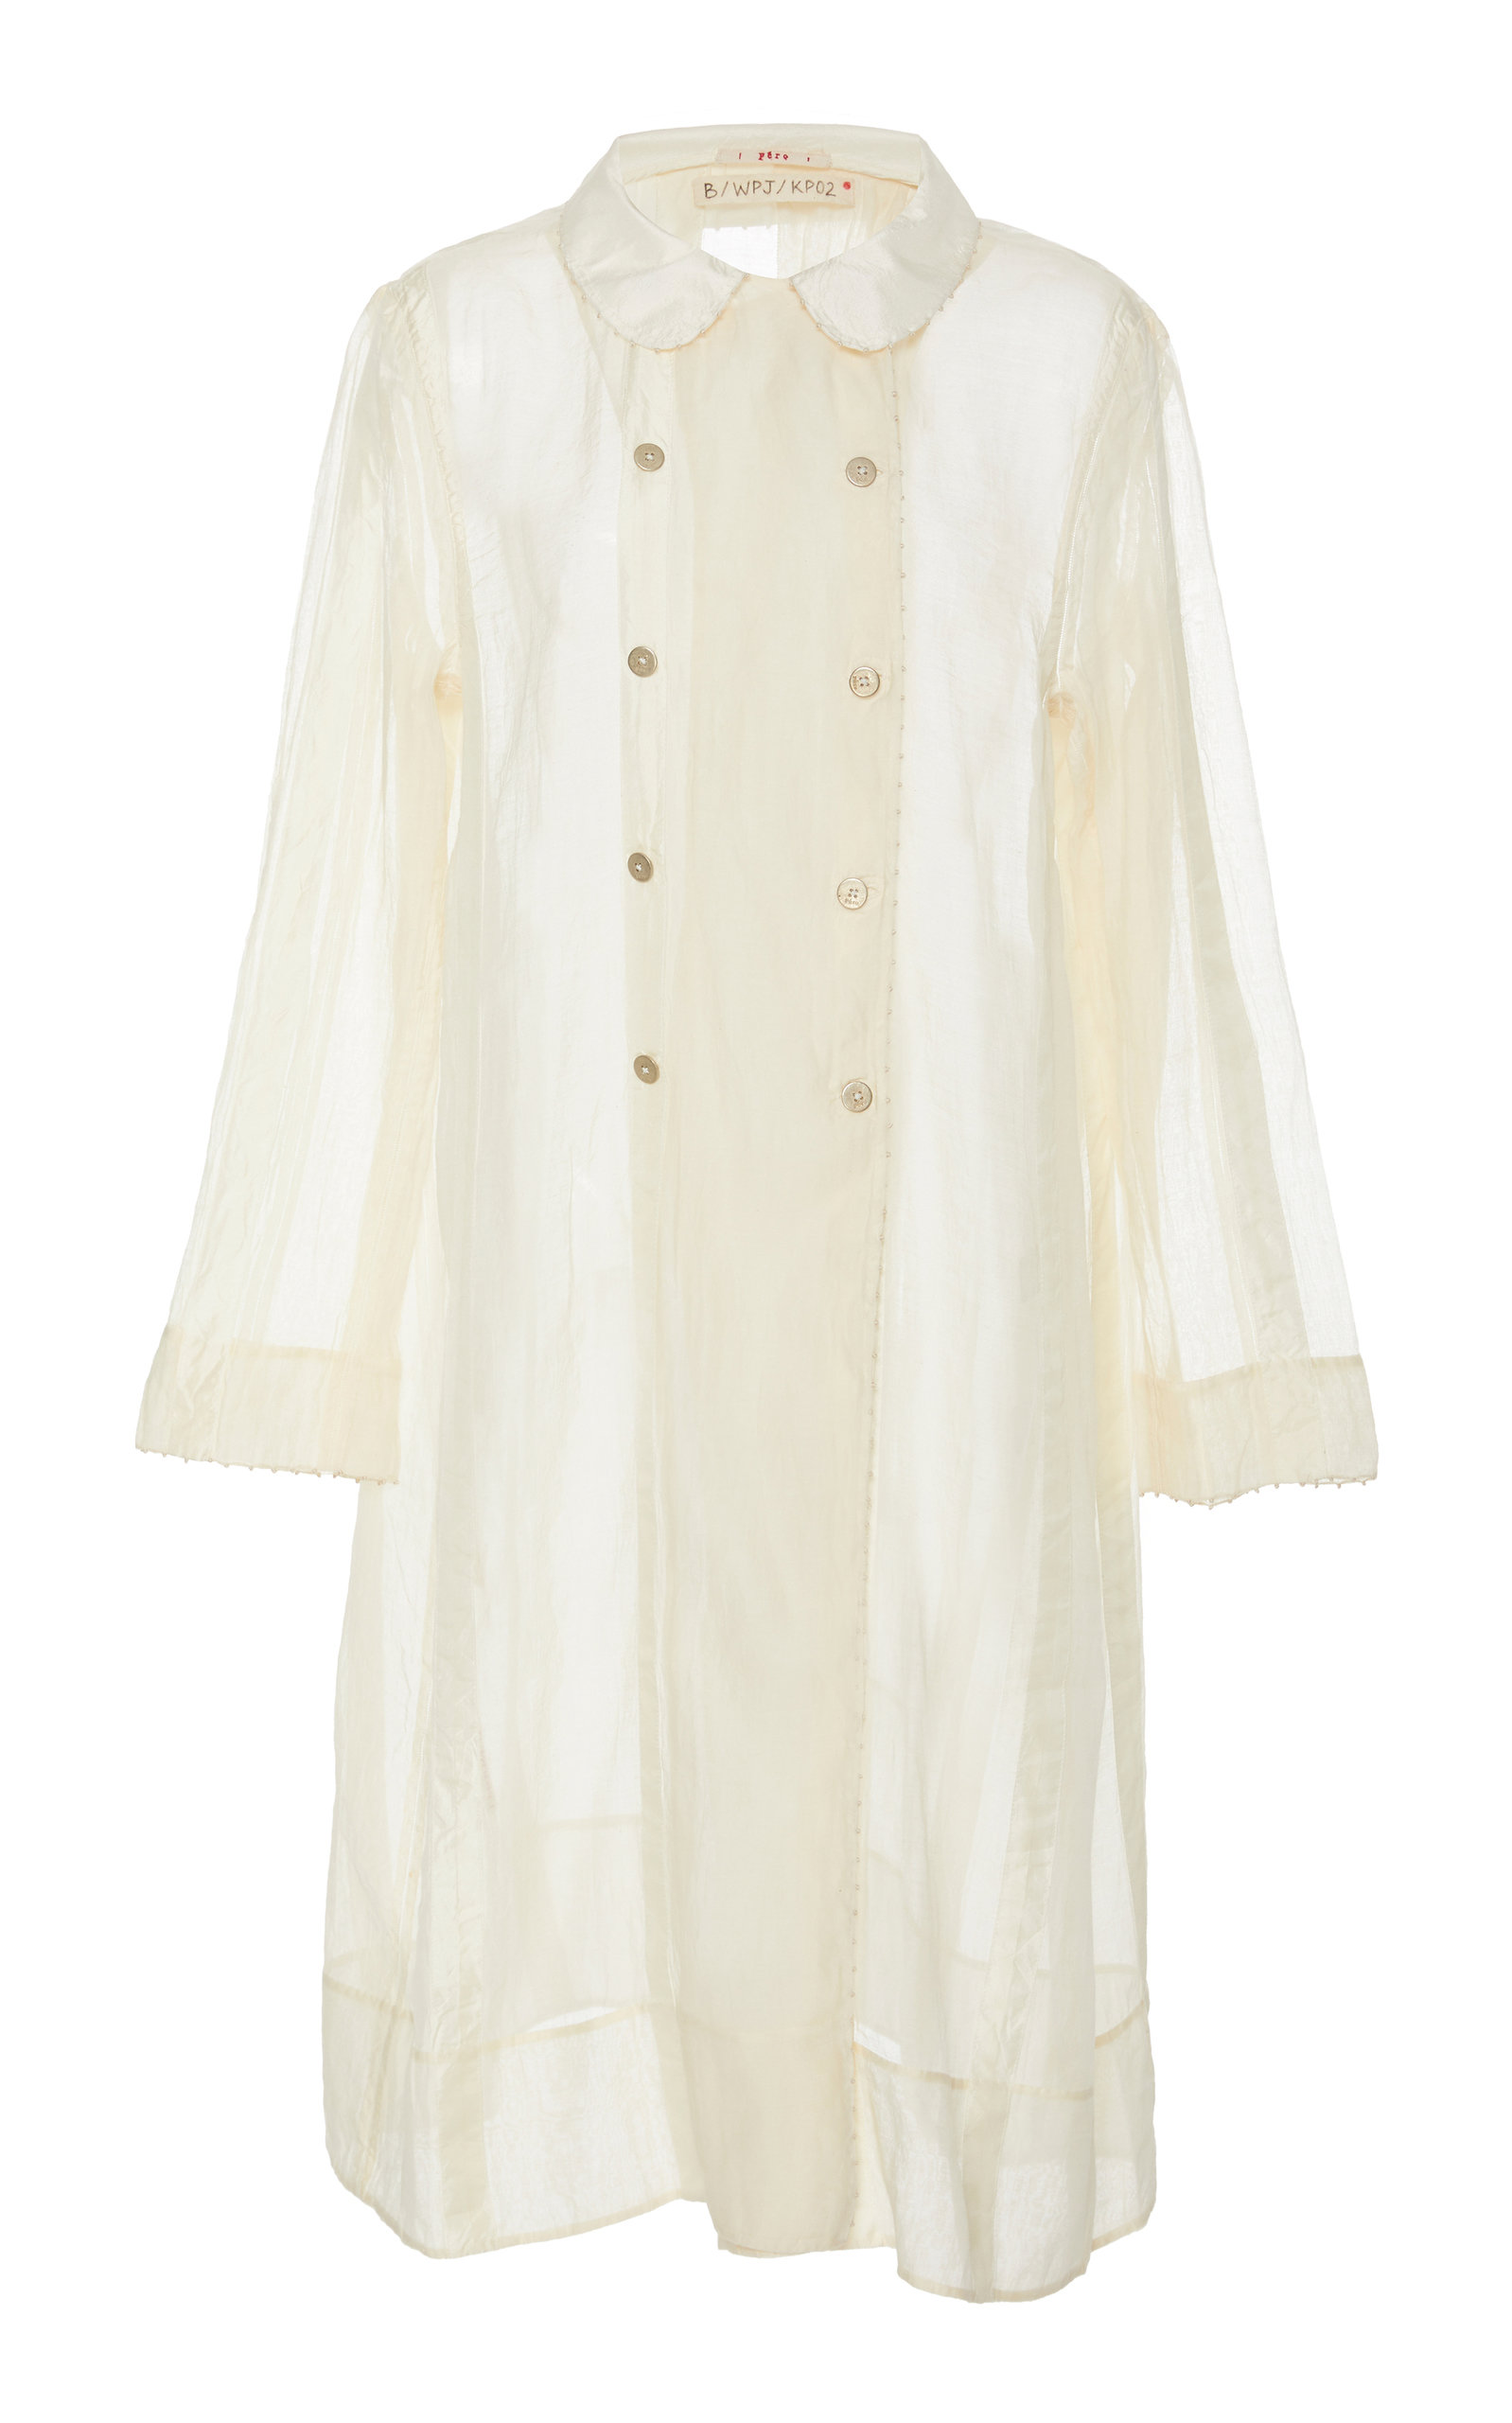 PÉRO Relaxed Cotton Jacket in White